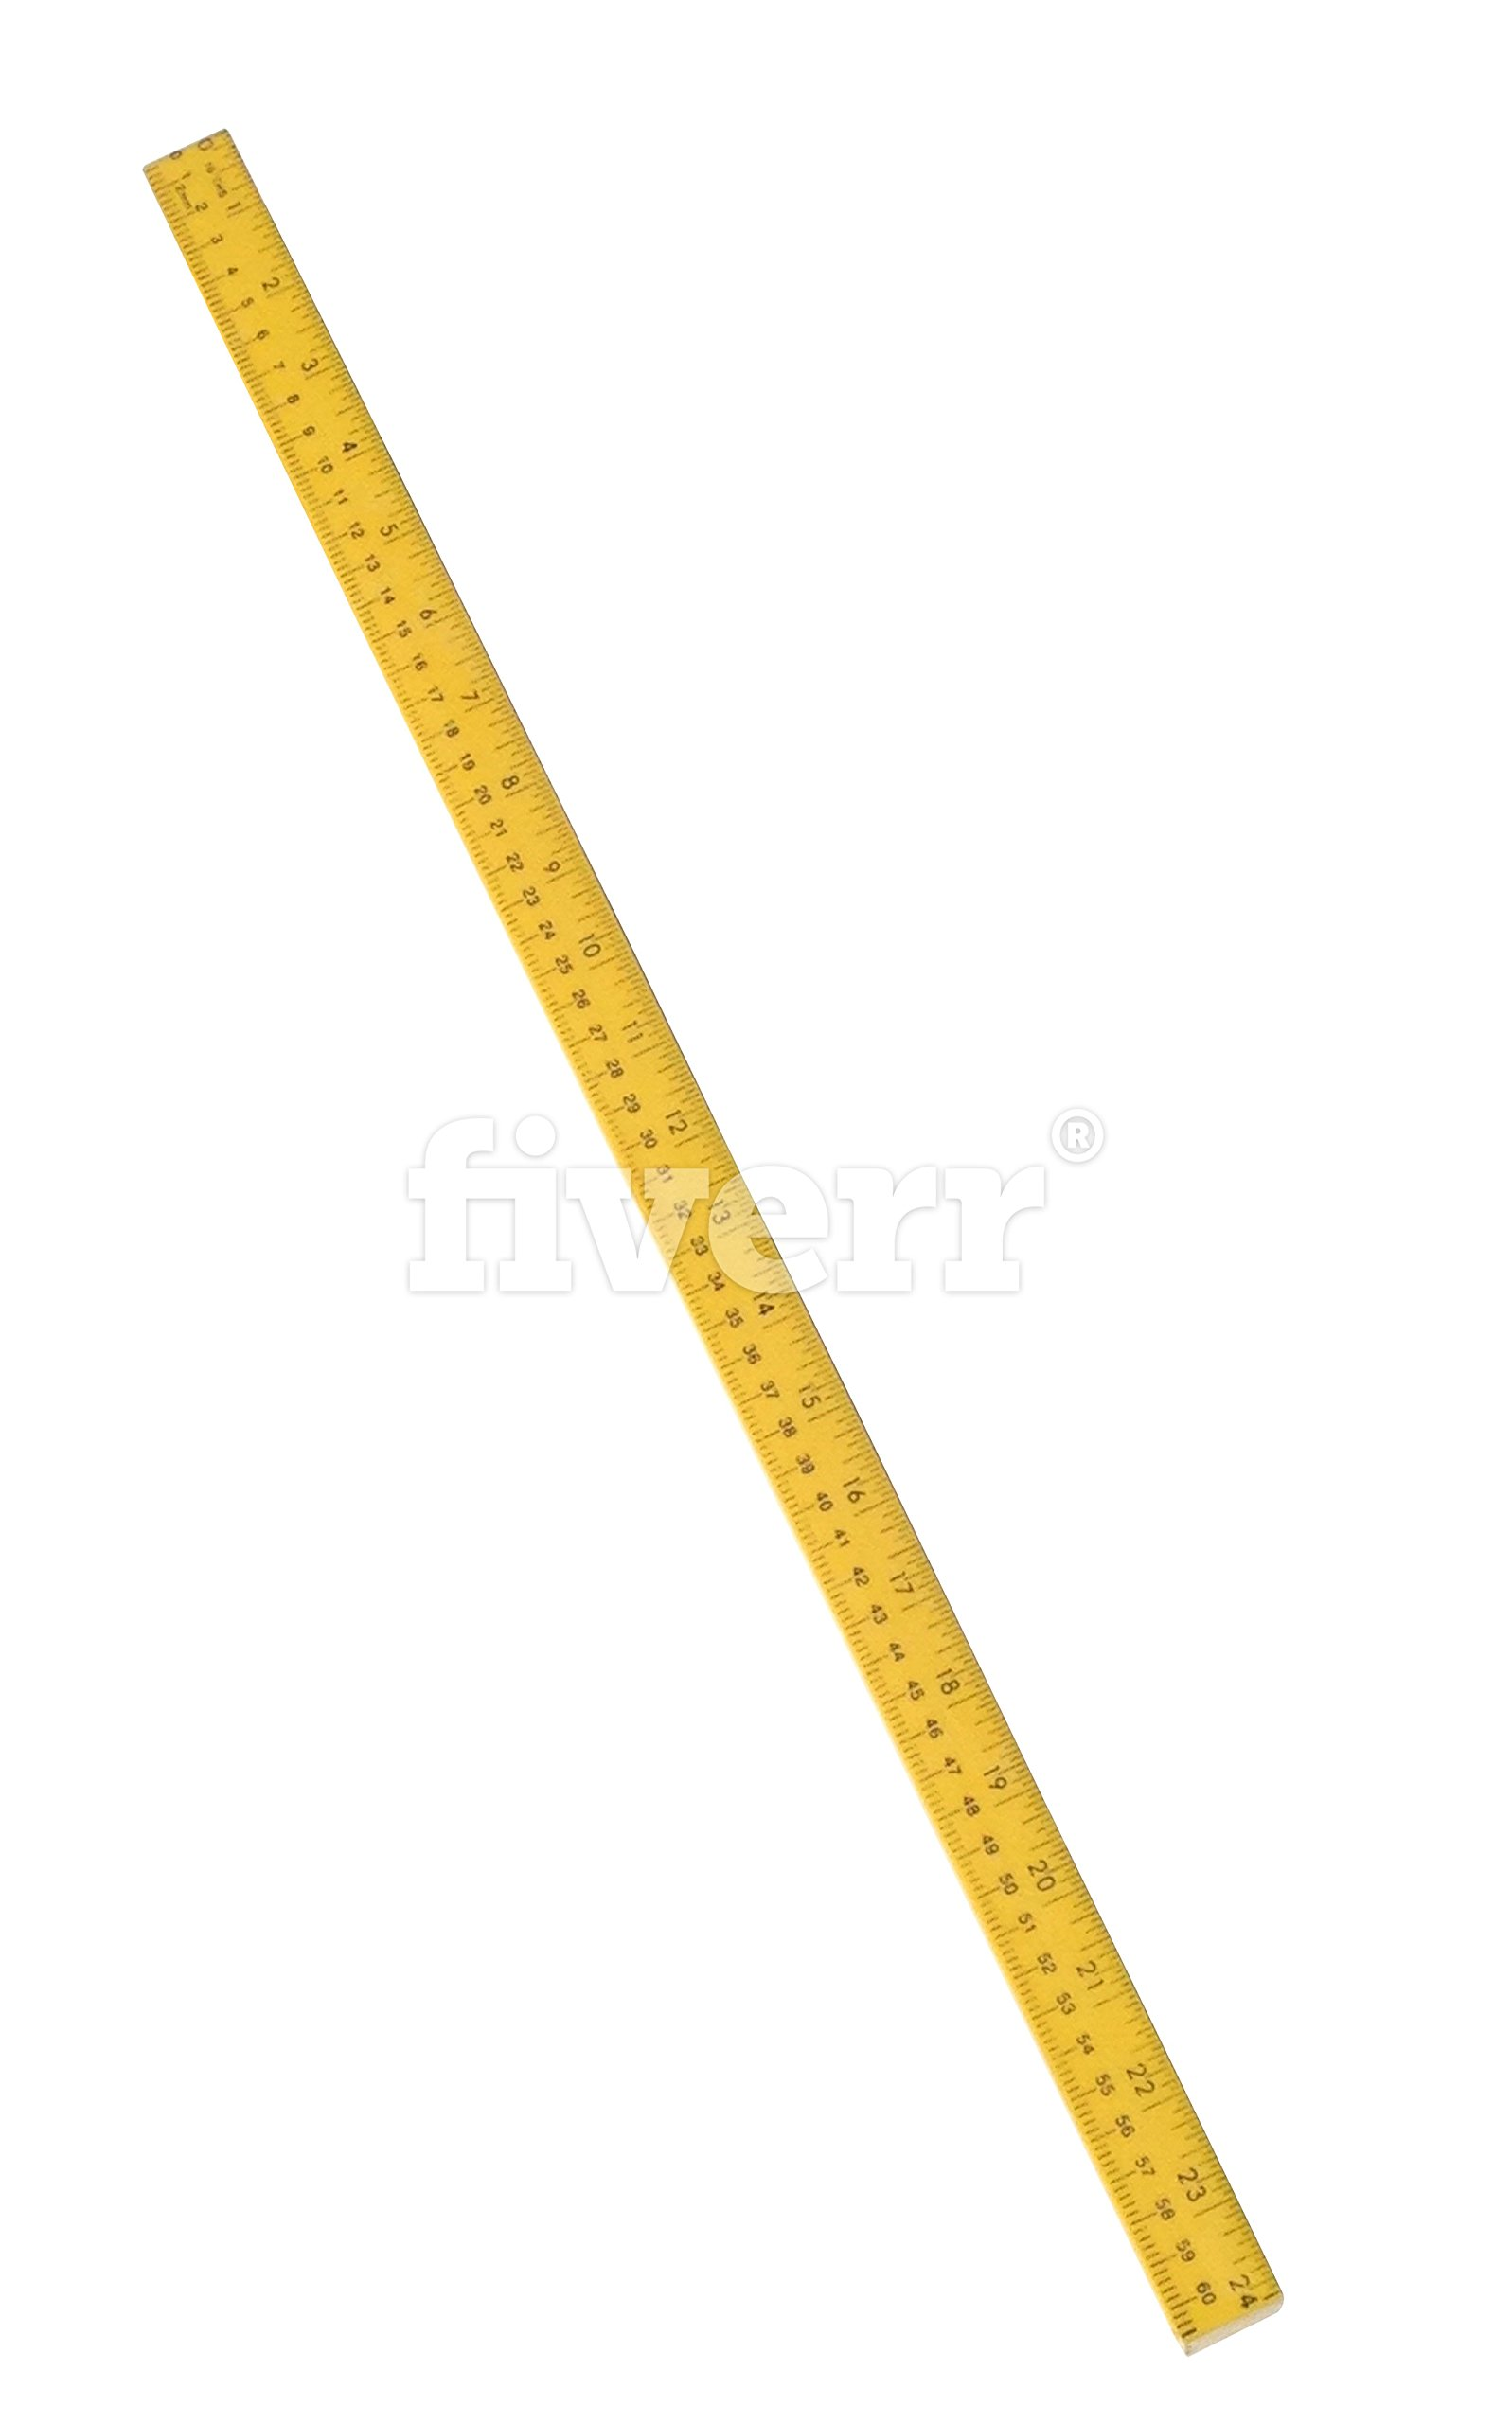 24 Inch and 6 Inch 3 Bubble Torpedo Level Pack Home or Jobsite Approved by Straight and Narrow (Image #7)